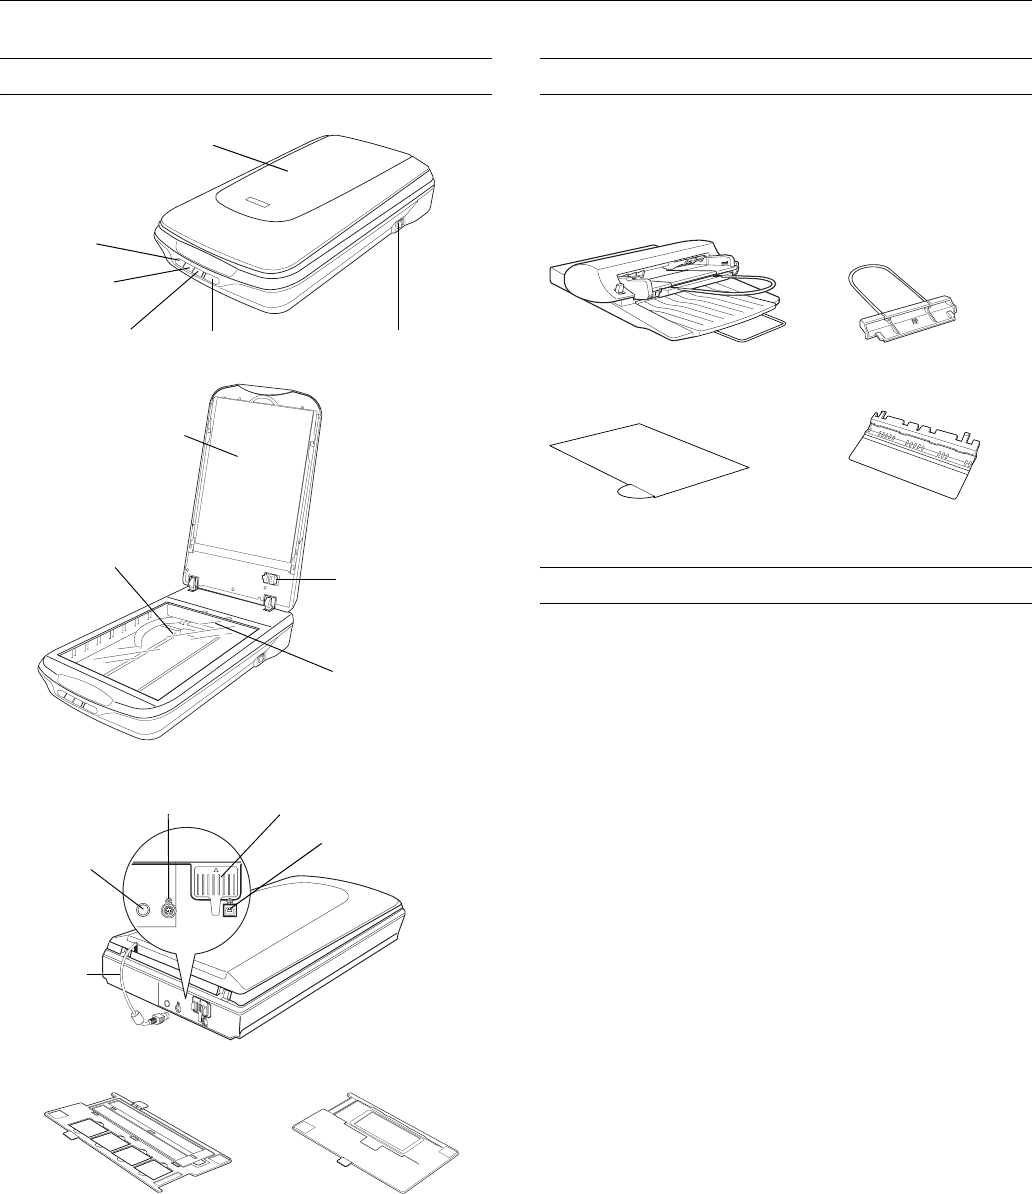 Manual Epson perfection 4490 photo (page 1 of 10) (English